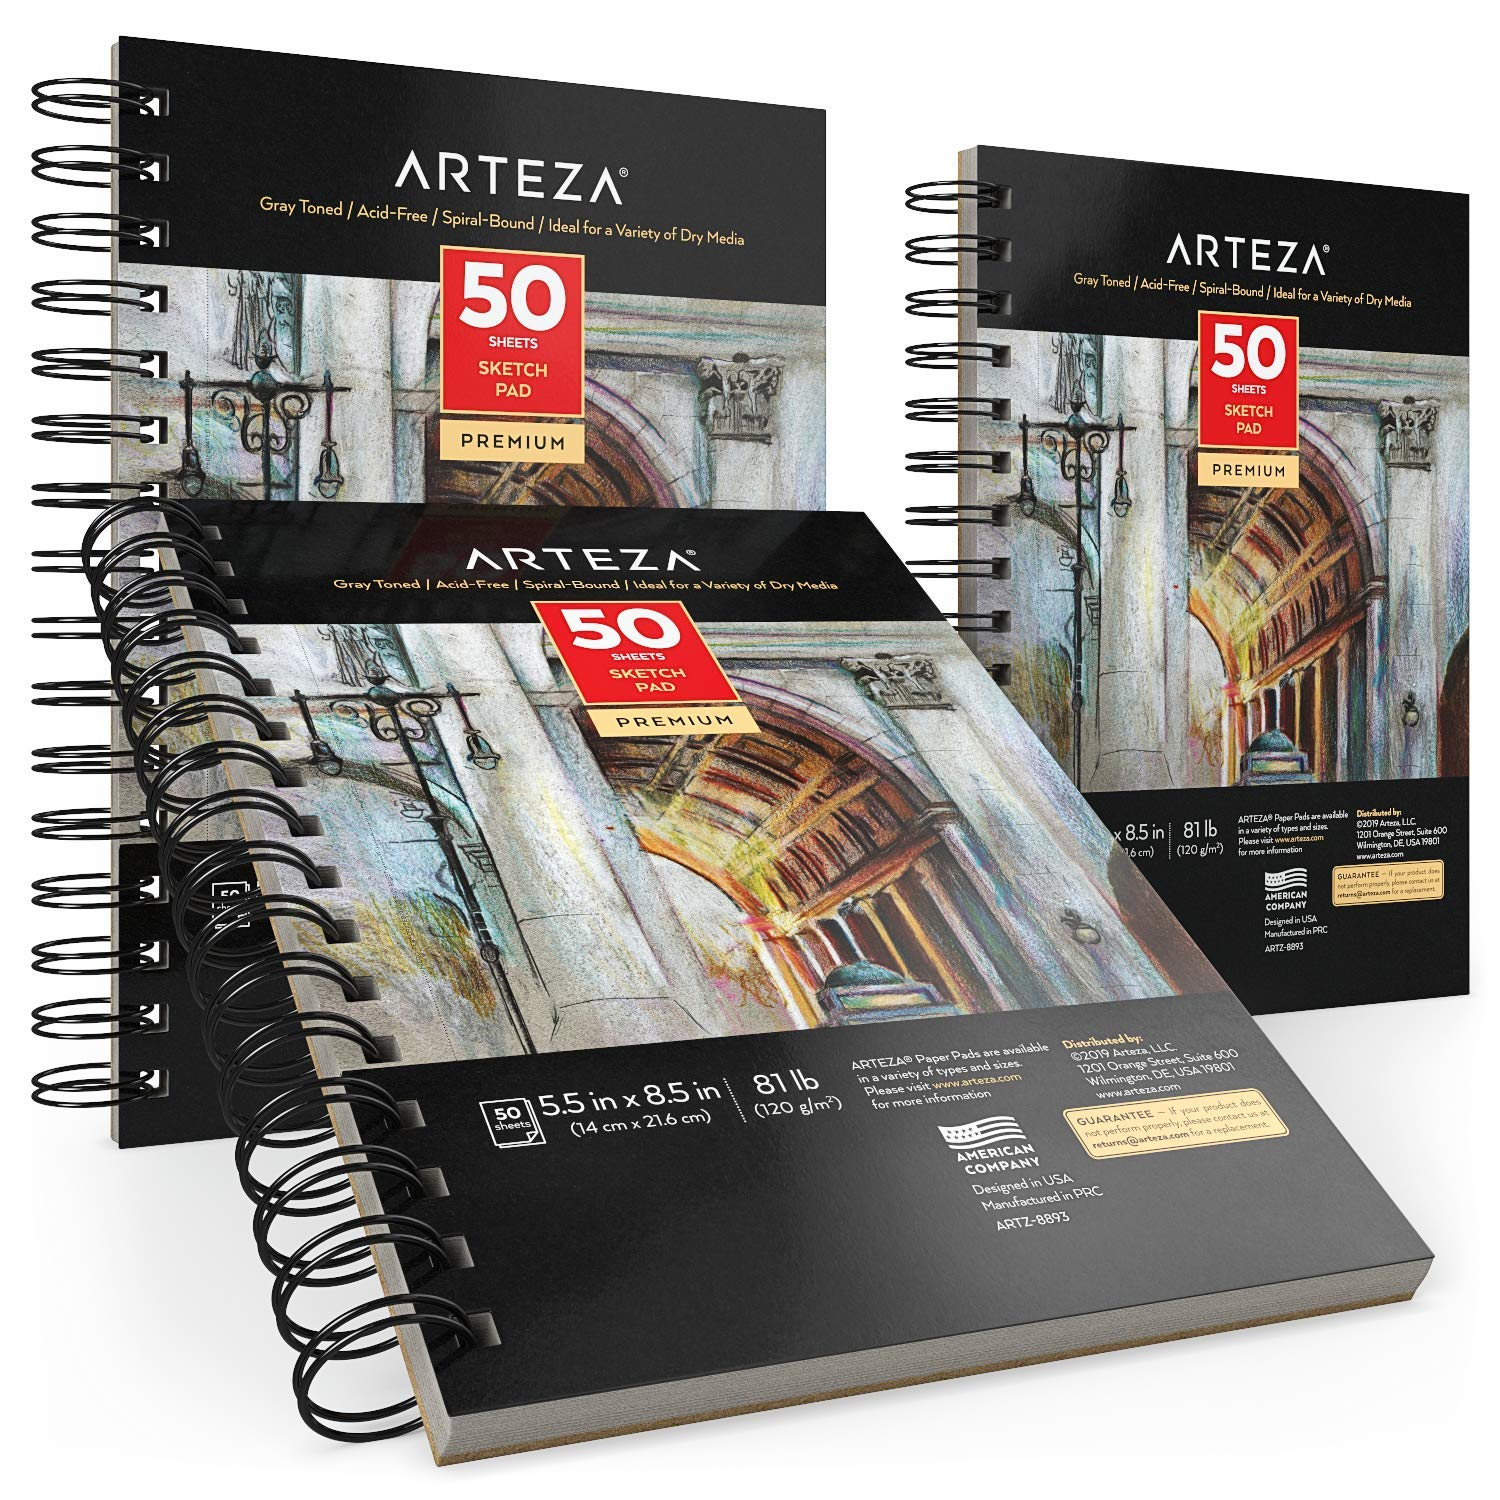 """150 Sheets 81 lb//120gsm Gray Durable Acid-Free Drawing Paper Pack of 3 ARTEZA 5.5x8.5/"""" Sketch Pad 50 Sheets Each Spiral Bound Artist Sketchbook Ideal for Kids /& Adults"""